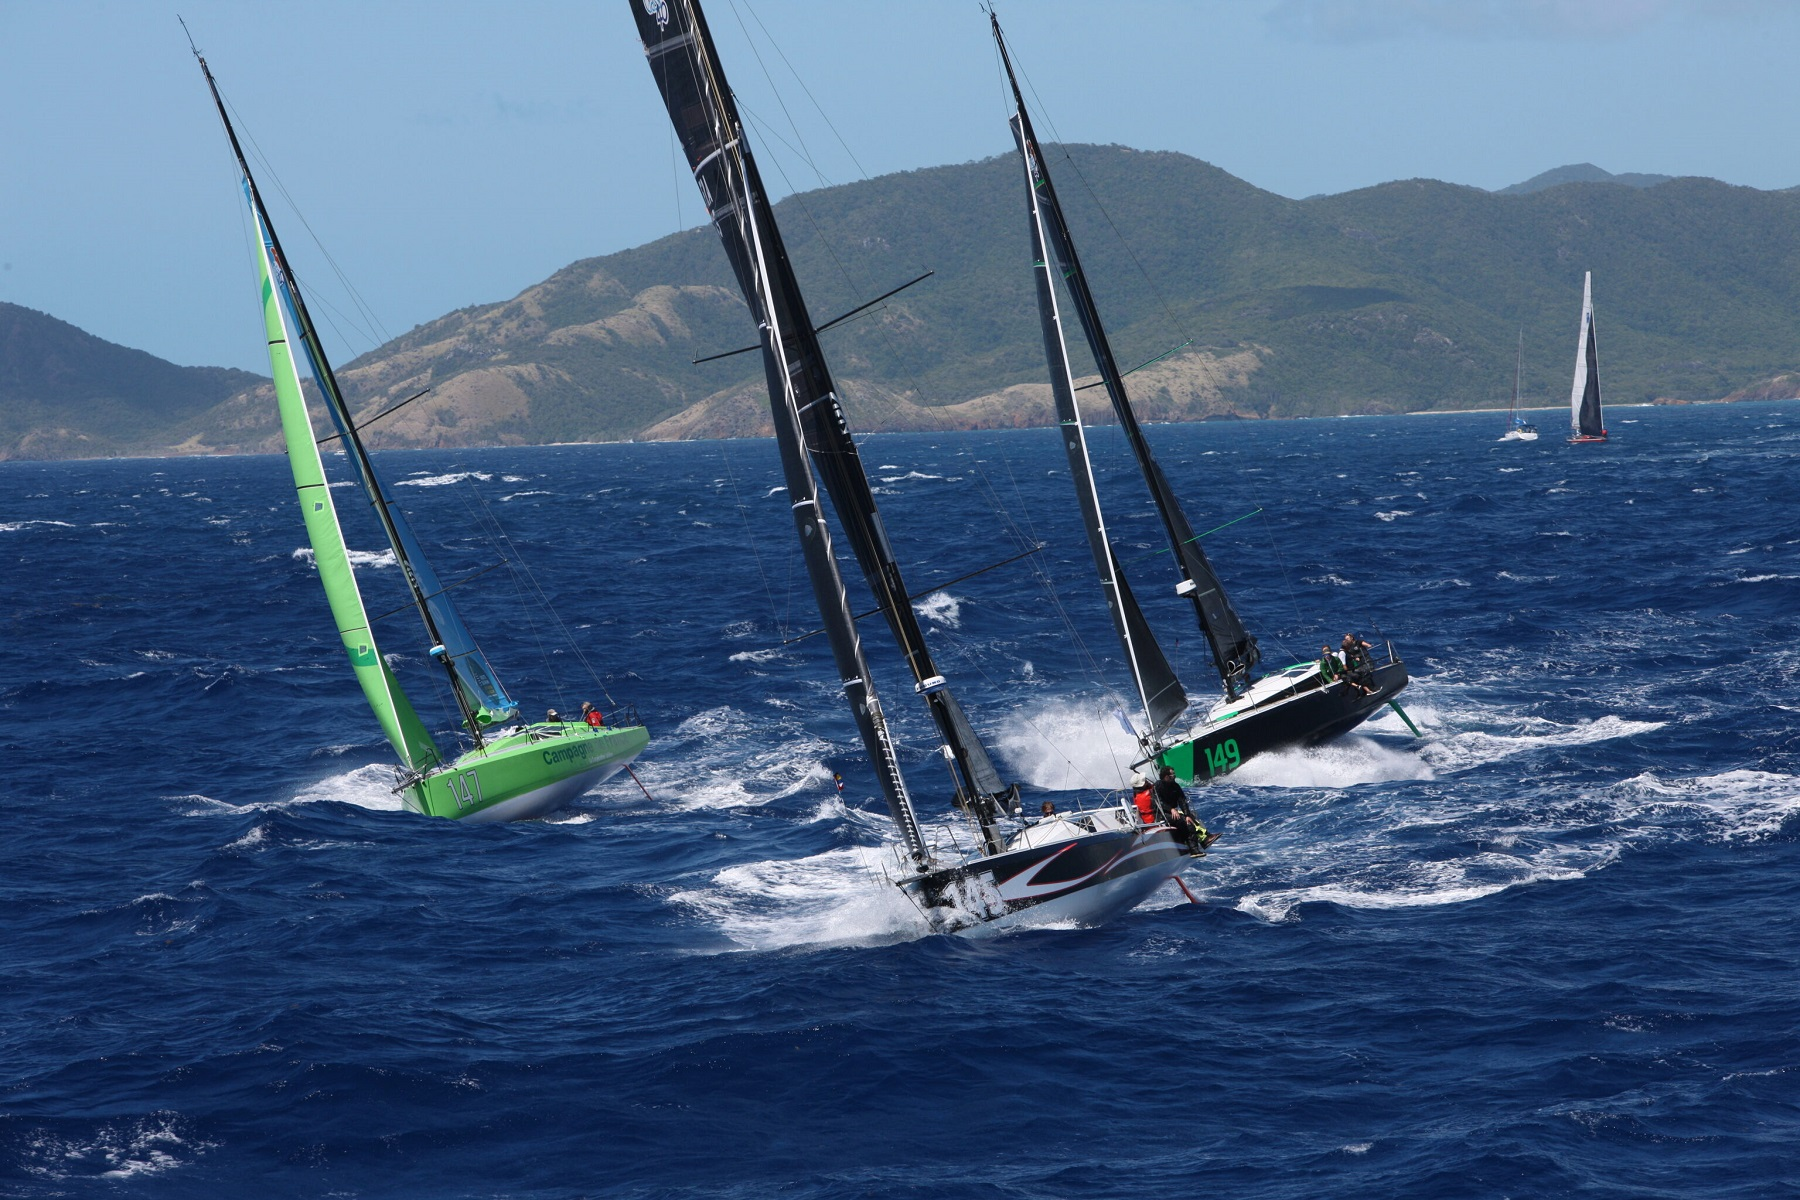 Around 10 Class40s are expected to be on the start line of the 2022 RORC Caribbean 600 © Tim Wright/Photoaction.com